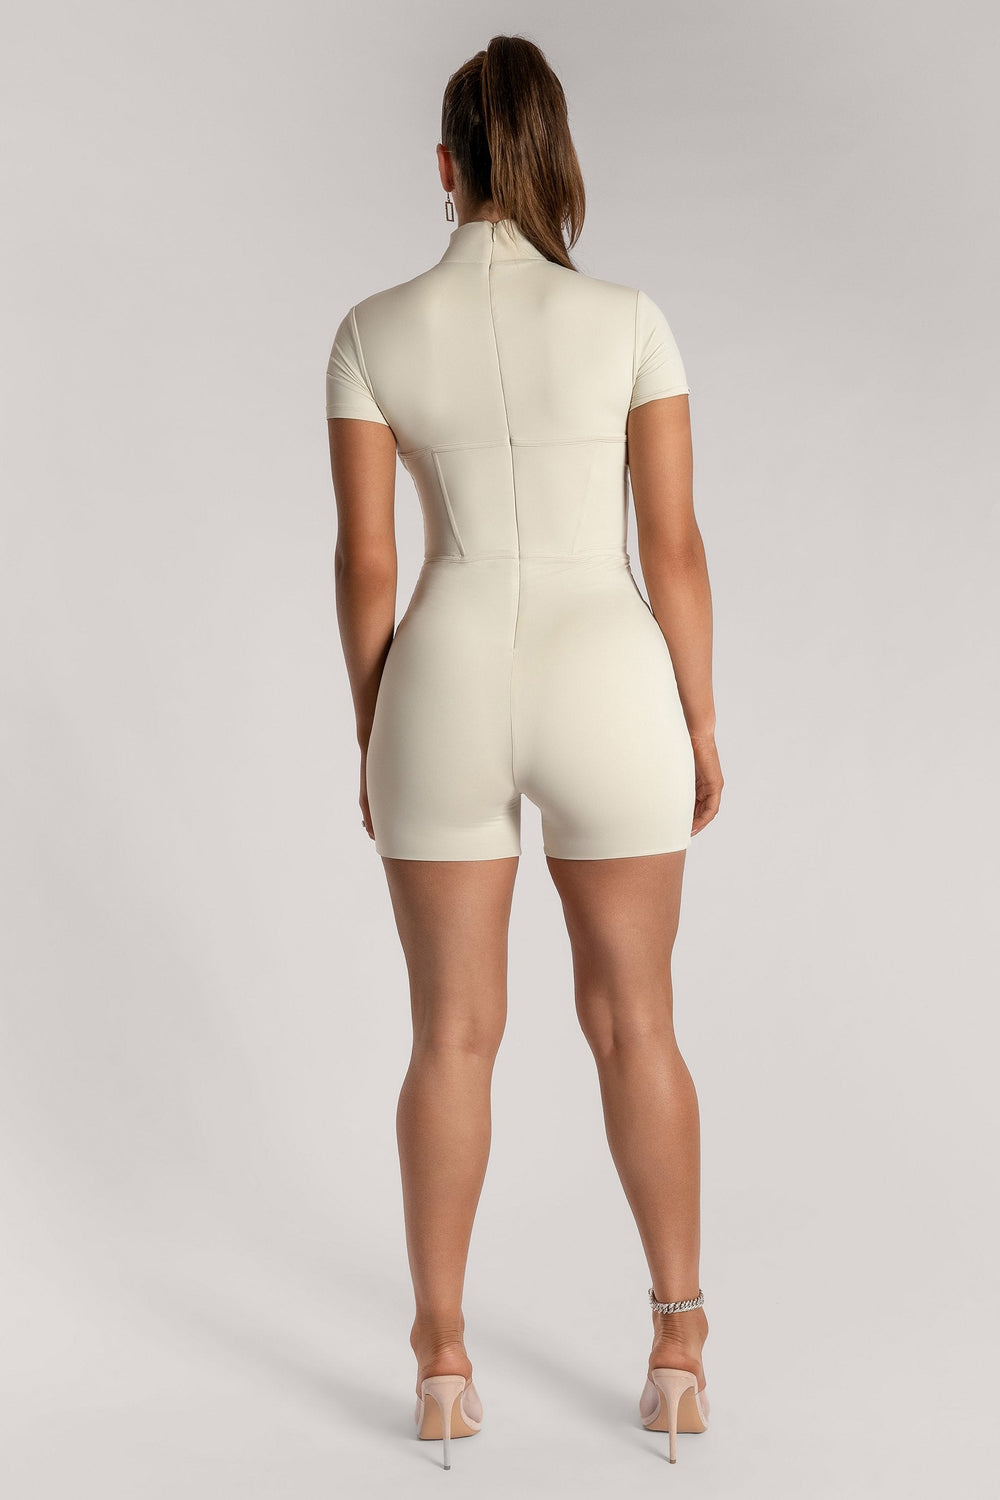 Zahiah Corsetted Short Sleeve Playsuit - Sand - MESHKI ?id=15950311293003